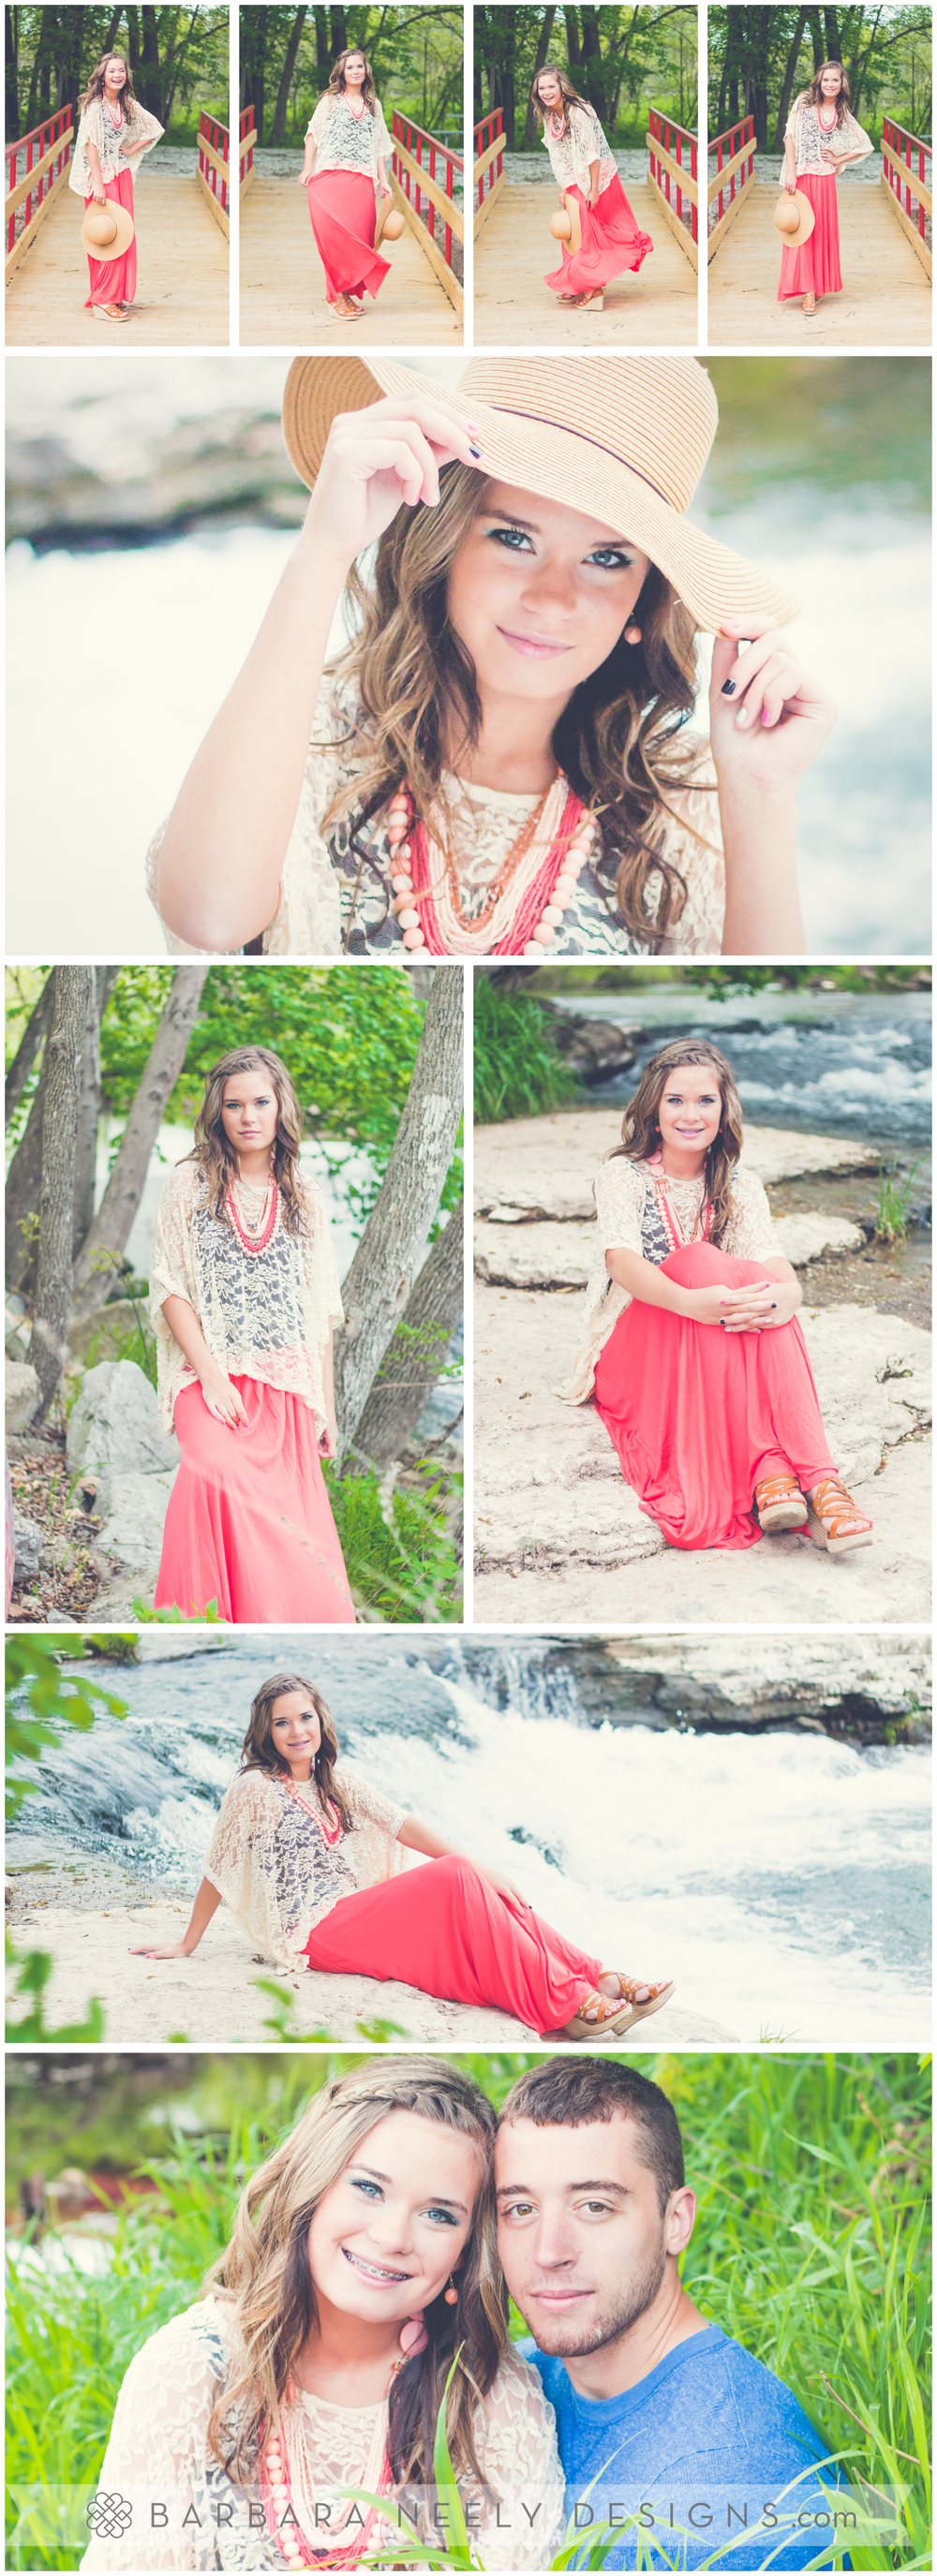 Best Country Senior Photos in Missouri - Mandy Senior 2015 B